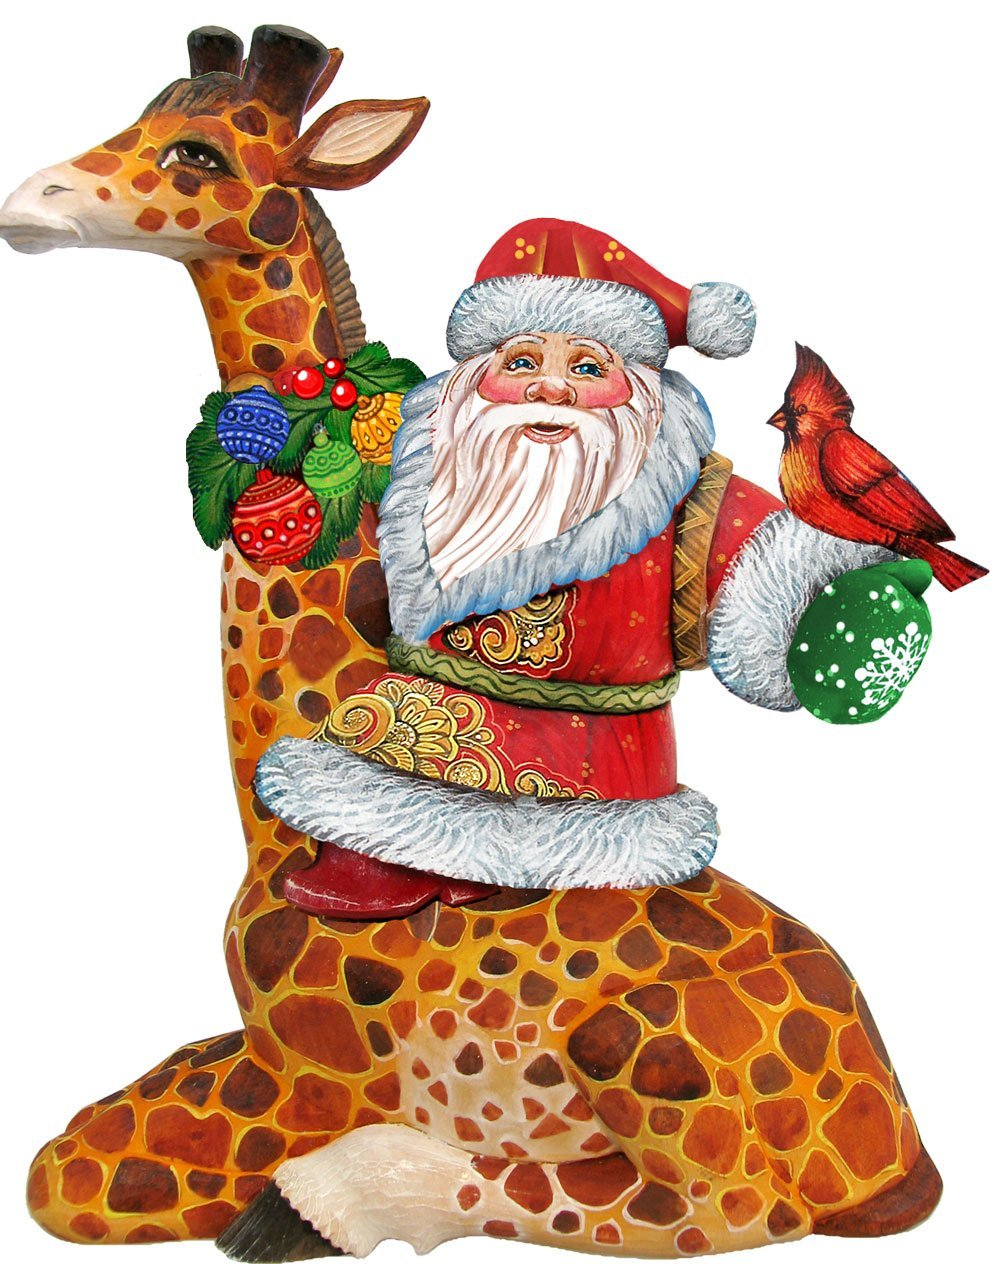 Giraffe Christmas Tree Ornaments